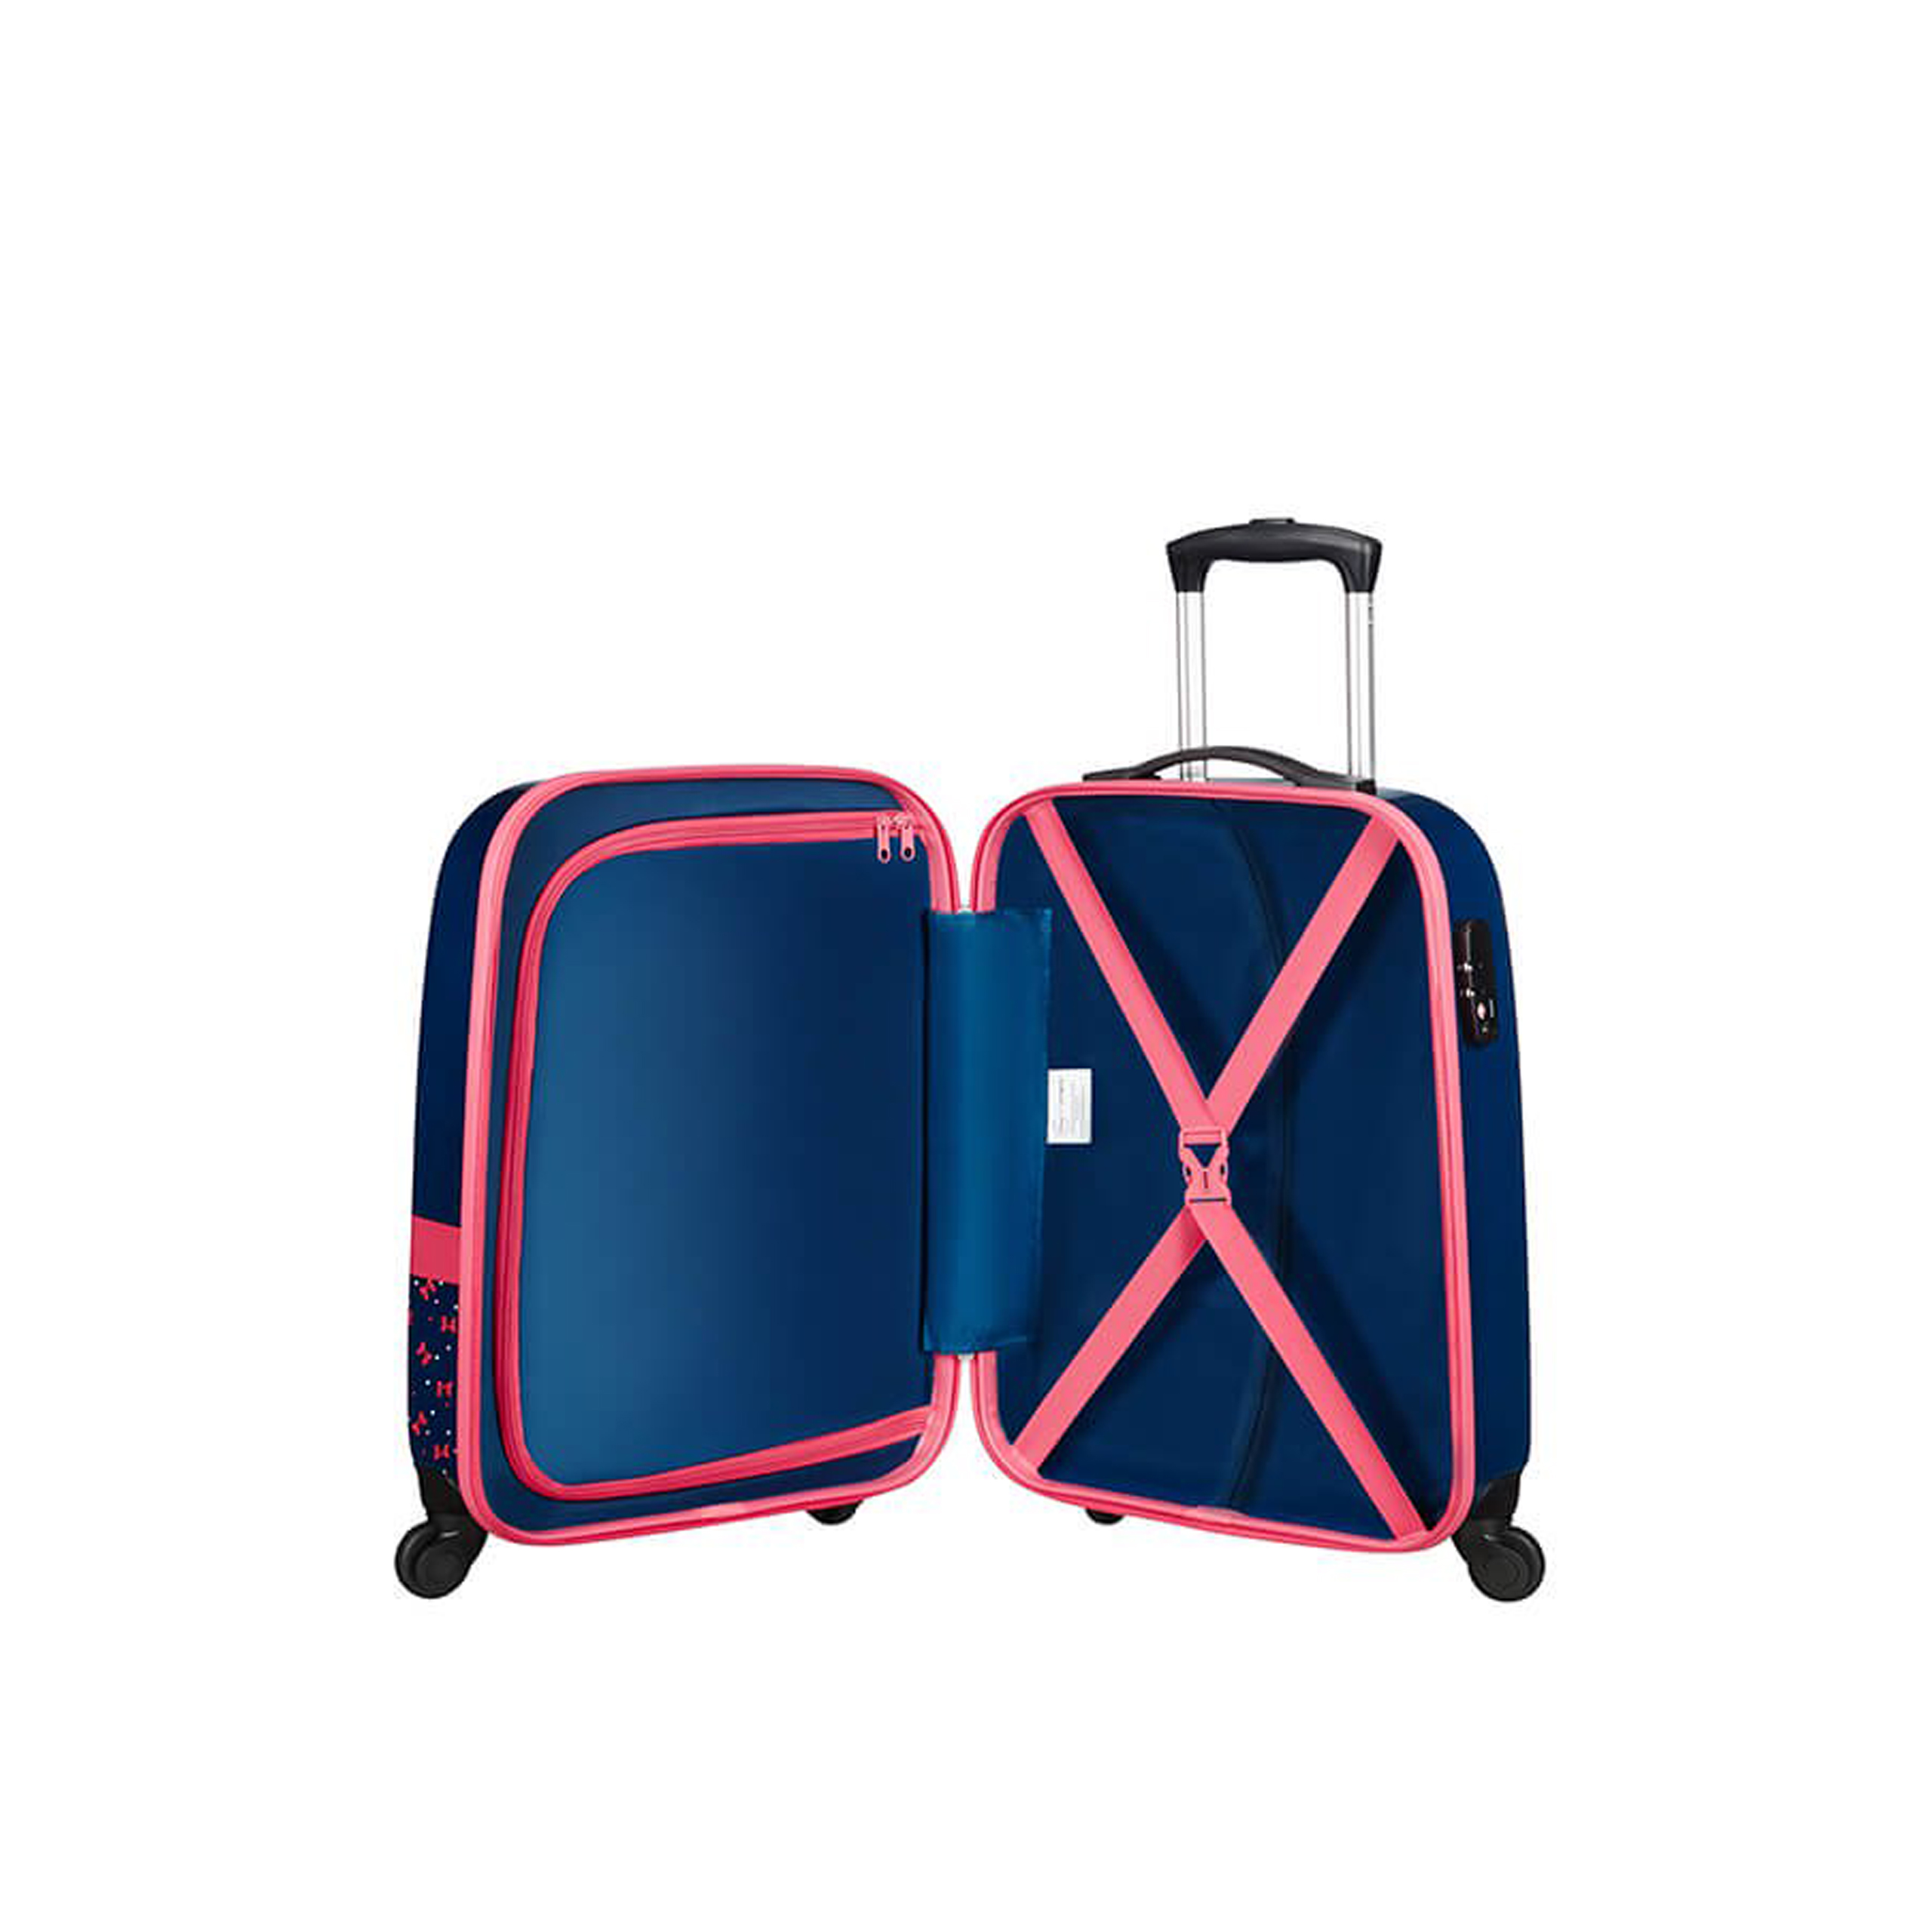 91ac59951b8e0 New Line - Walizka Samsonite Disney Minnie Neon 40C 01 010 - Twoja ...